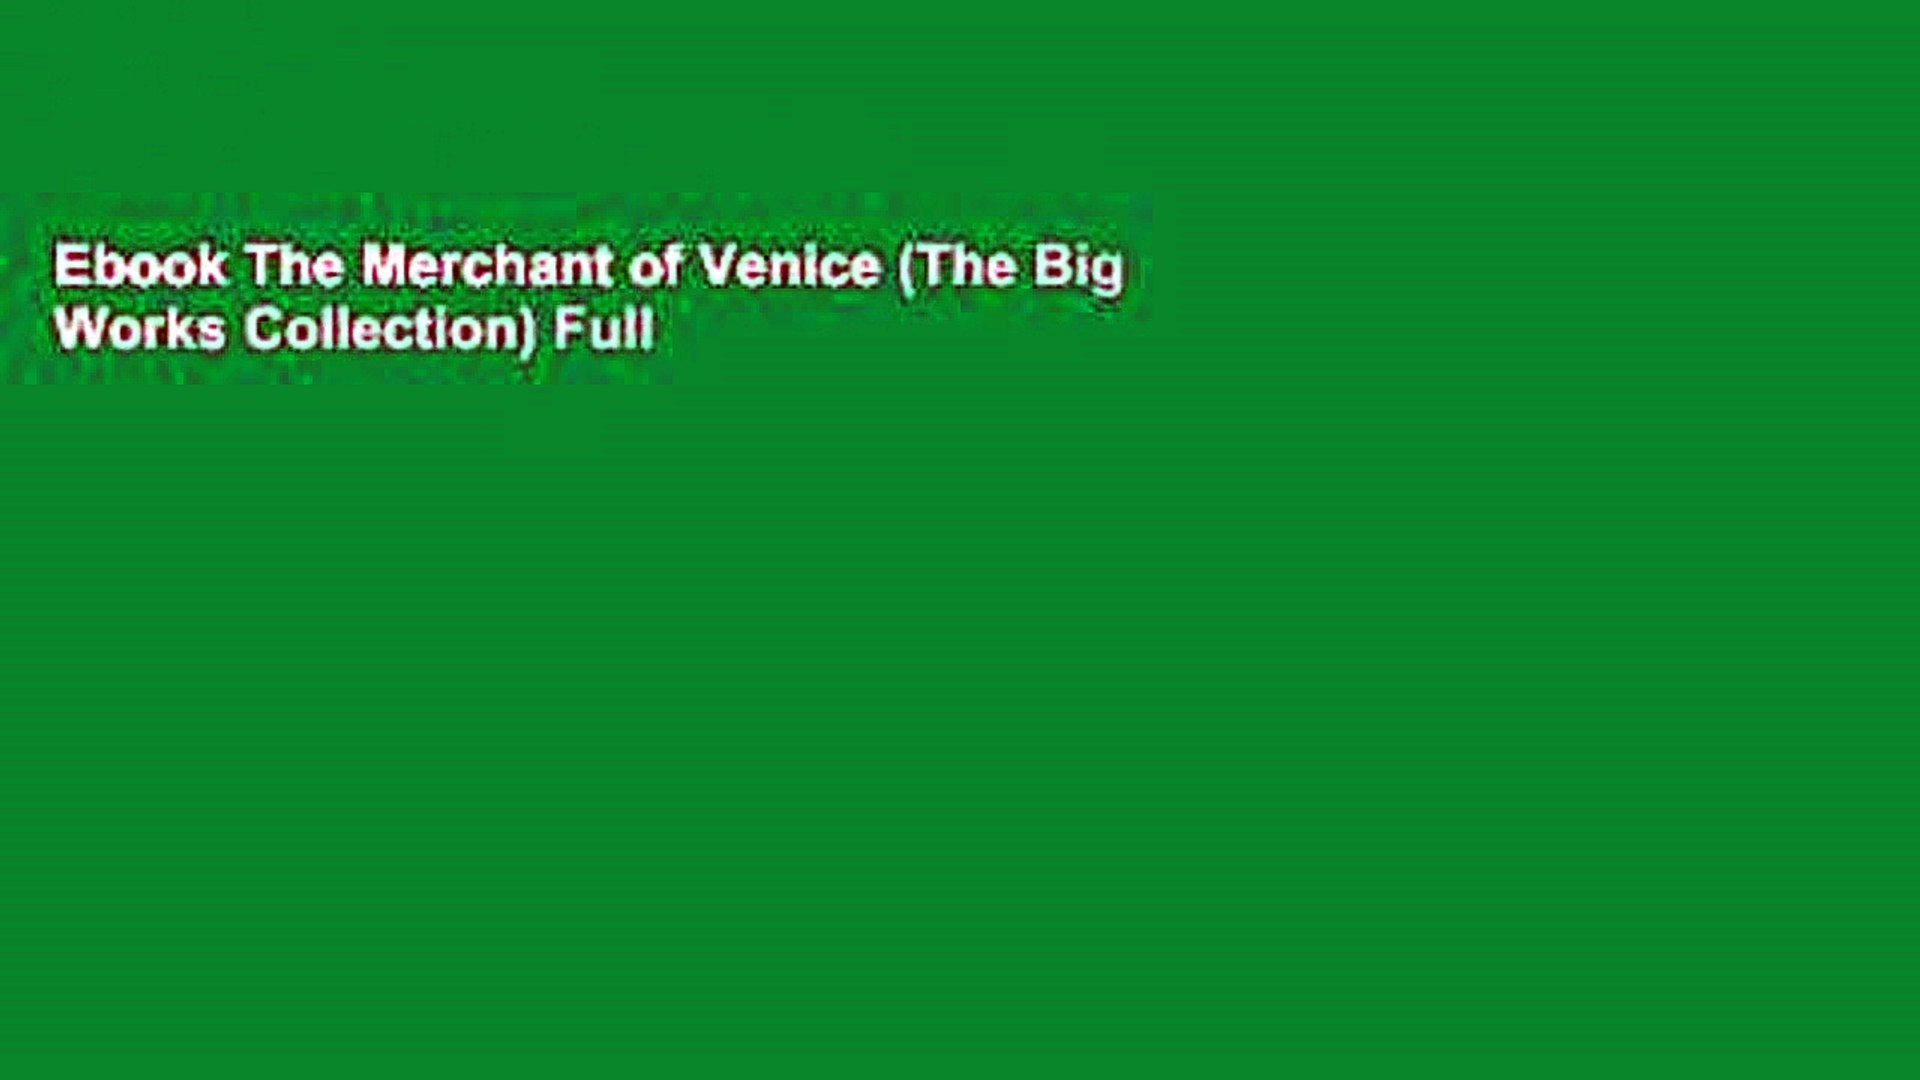 Ebook The Merchant of Venice (The Big Works Collection) Full